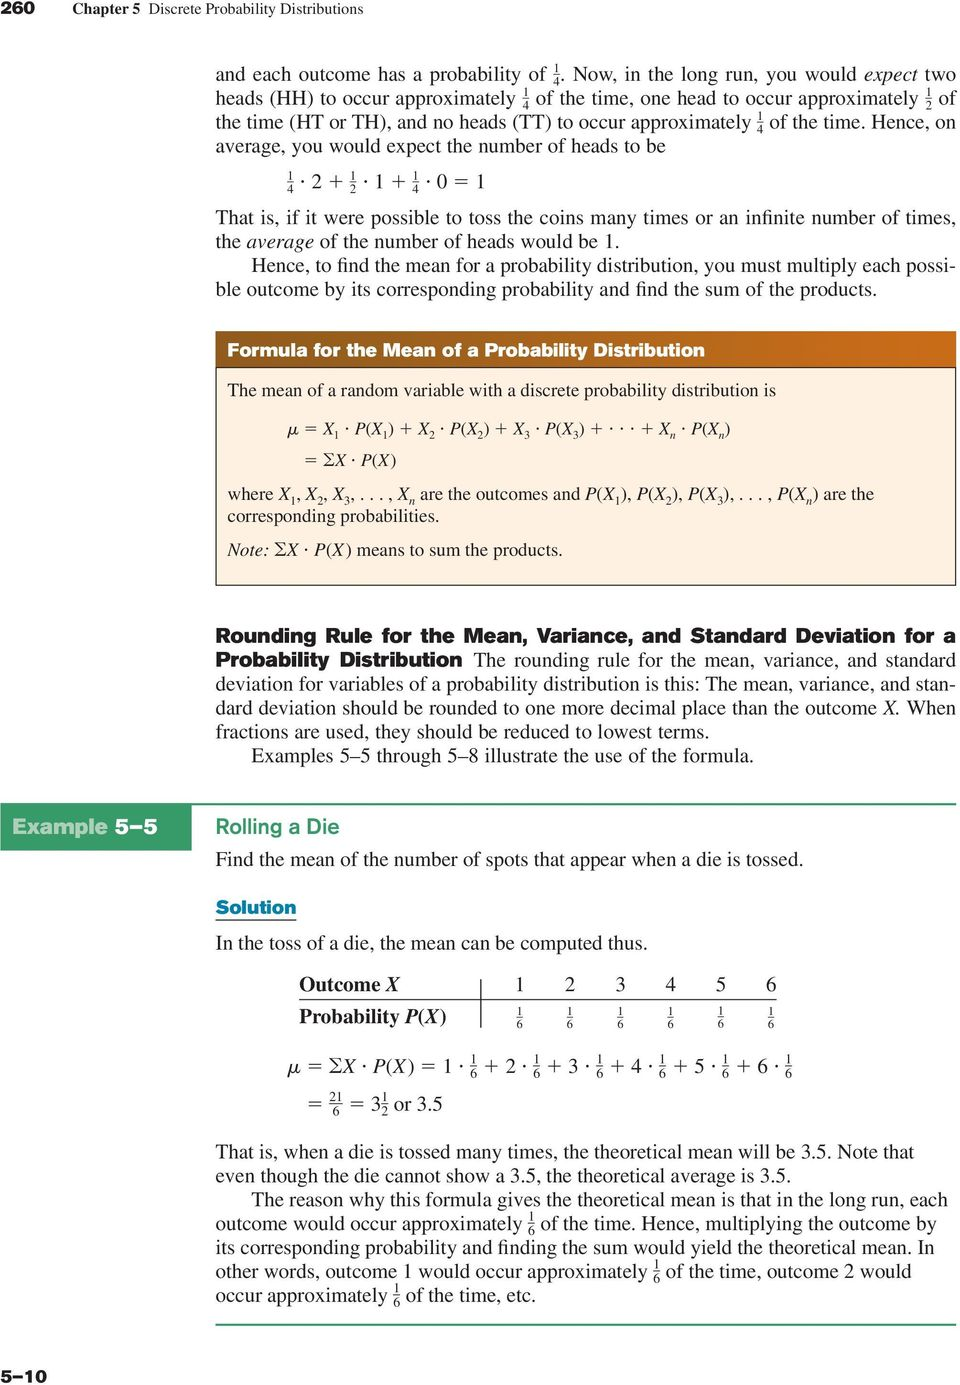 what is probability distribution pdf